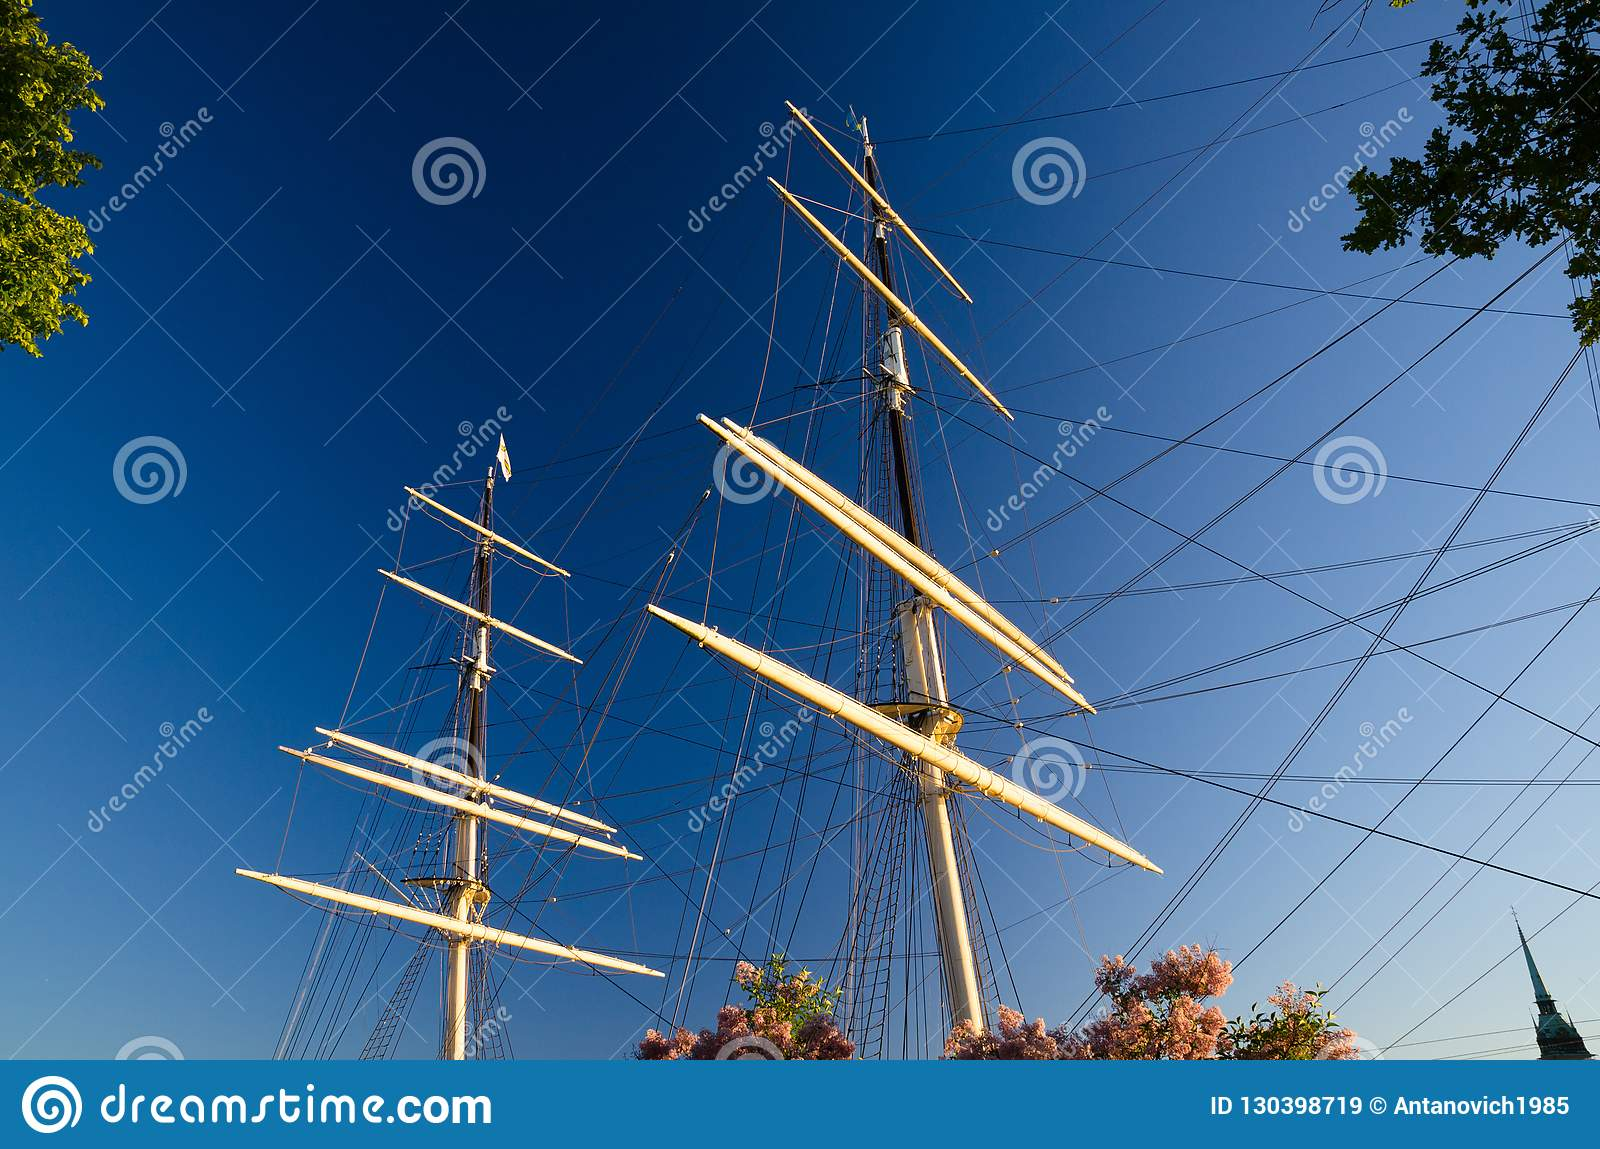 Mast with shroud rope of ship yacht with green leaves trees around